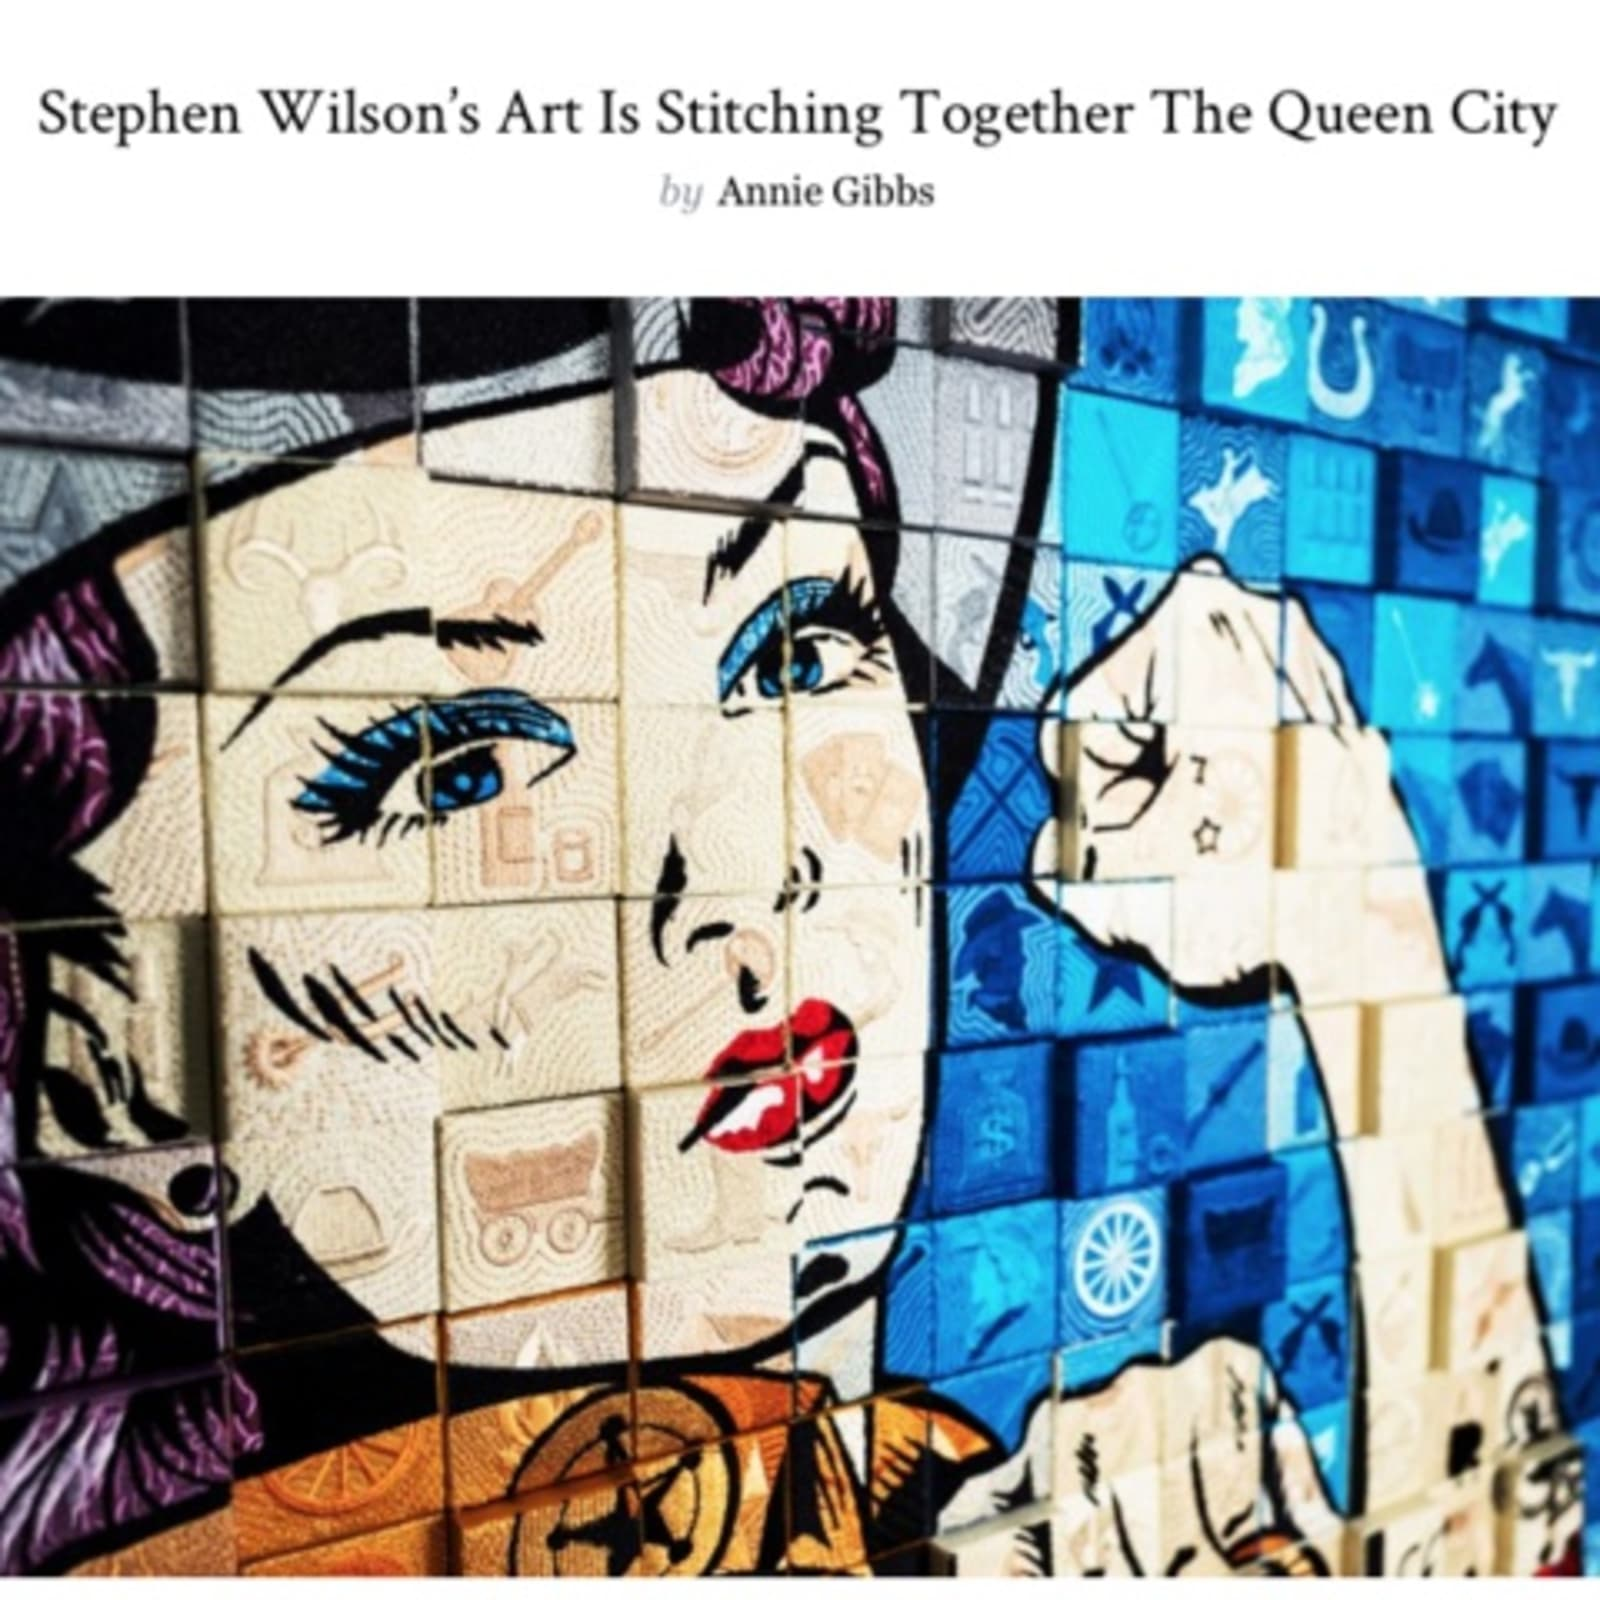 Stephen Wilson's art is stitching together the Queen City